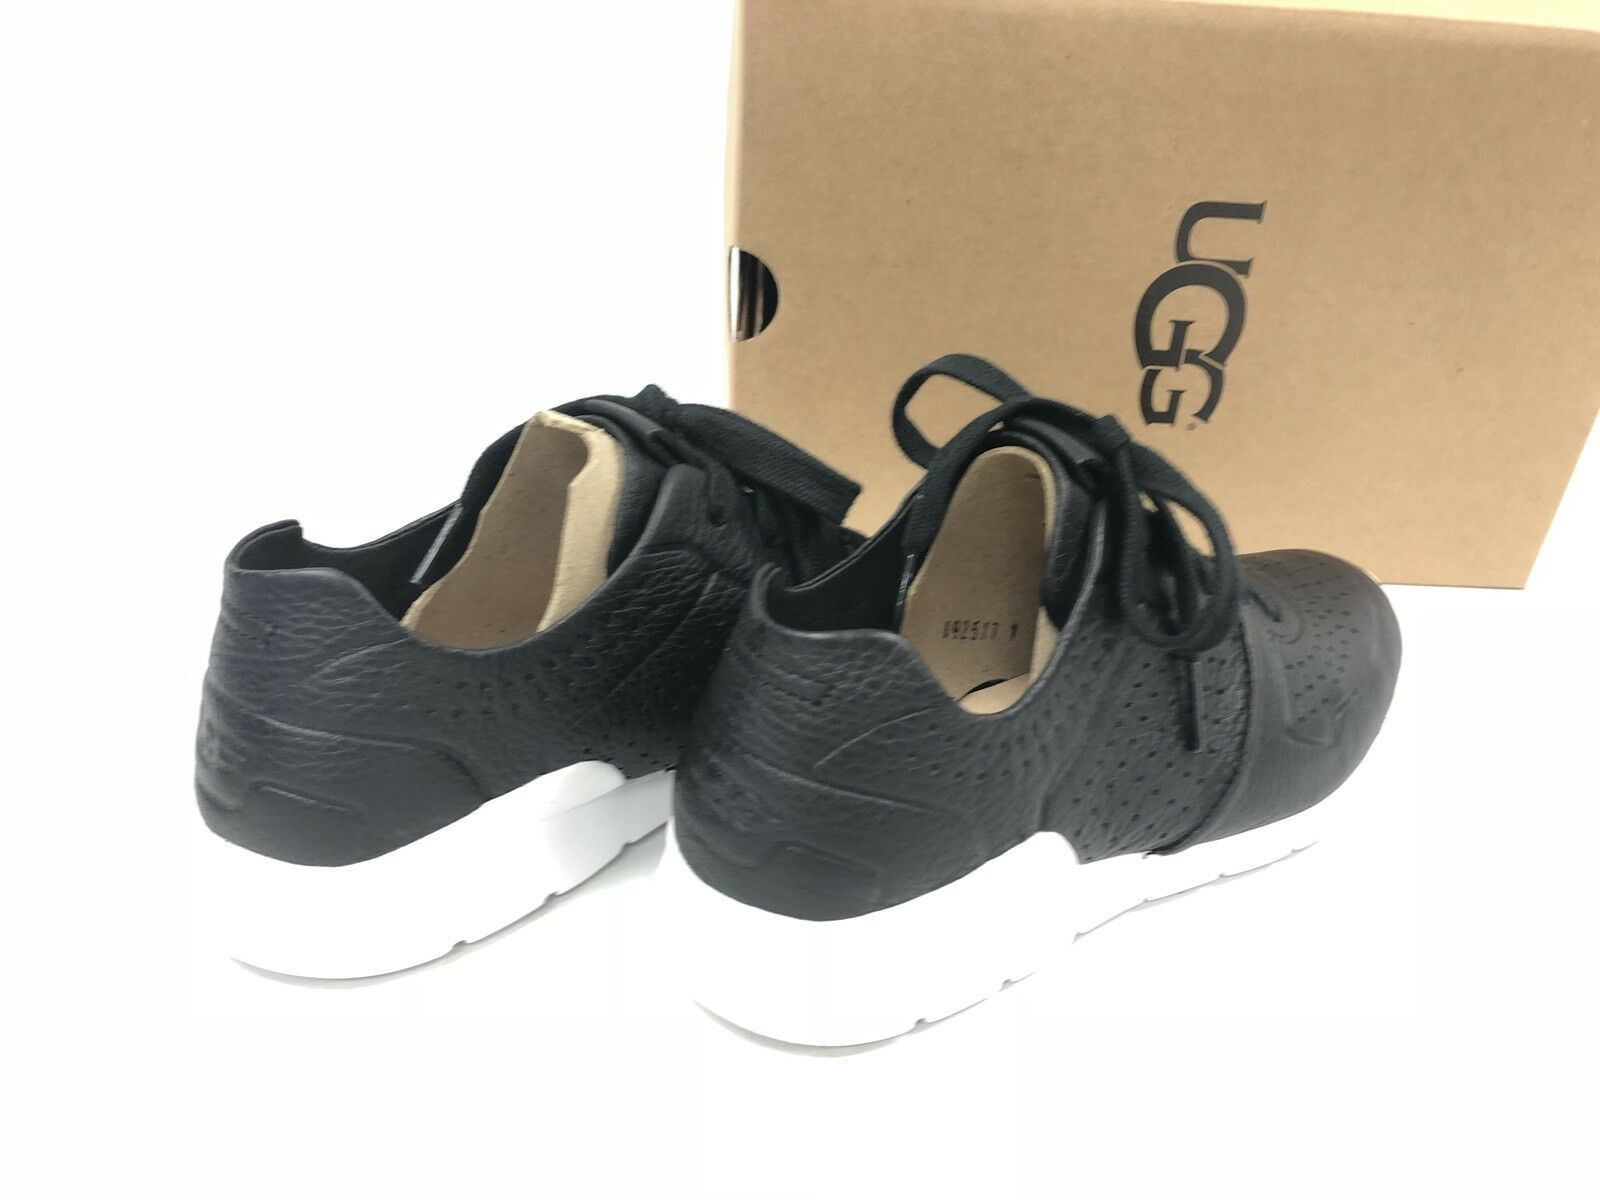 UGG Australia Tye Lace Up Leather Perforated Fashion Sneakers 1092577 Black